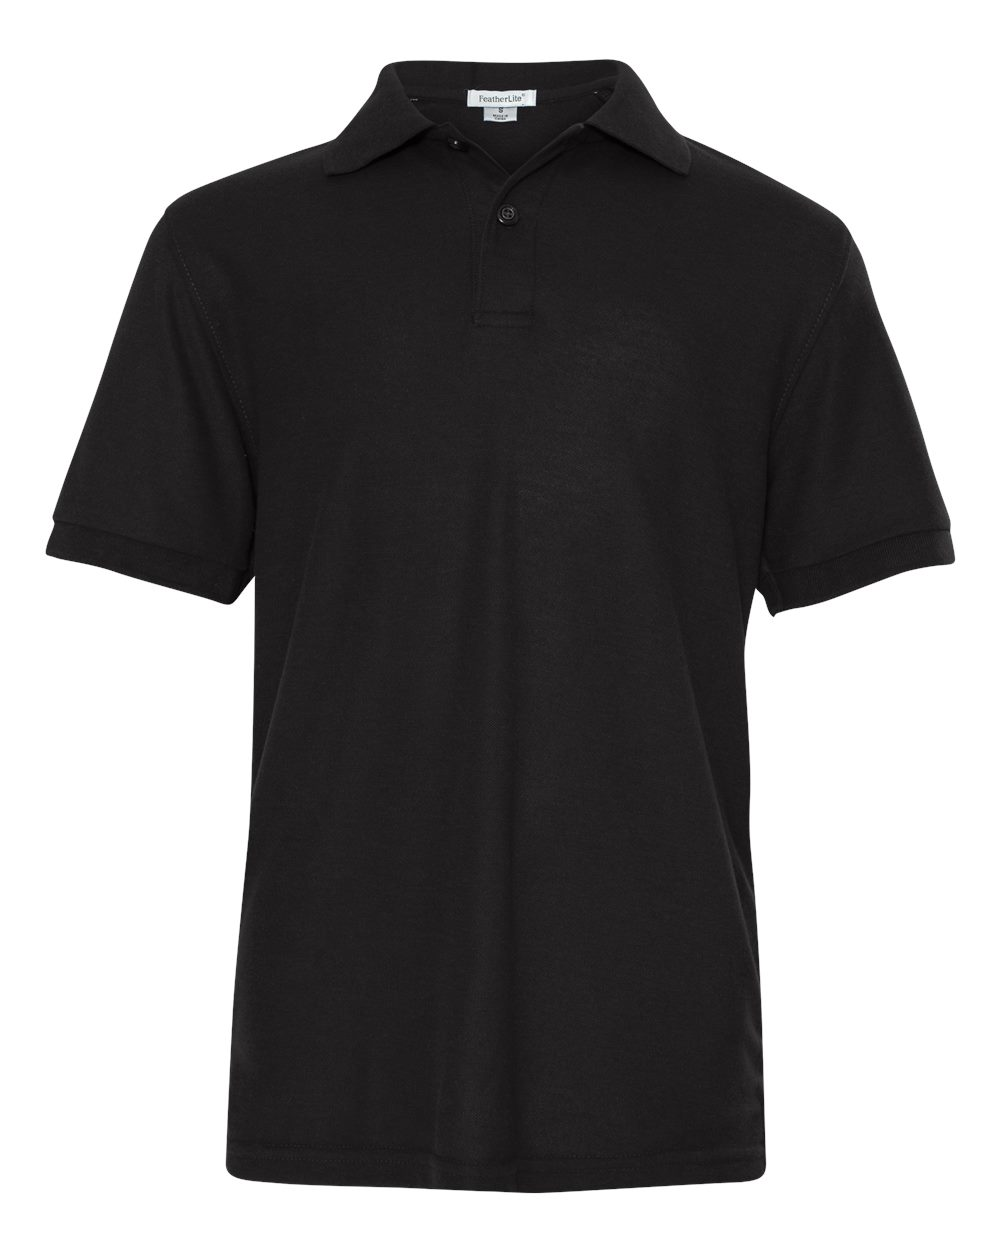 Youth Silky Smooth Pique Sport Shirt